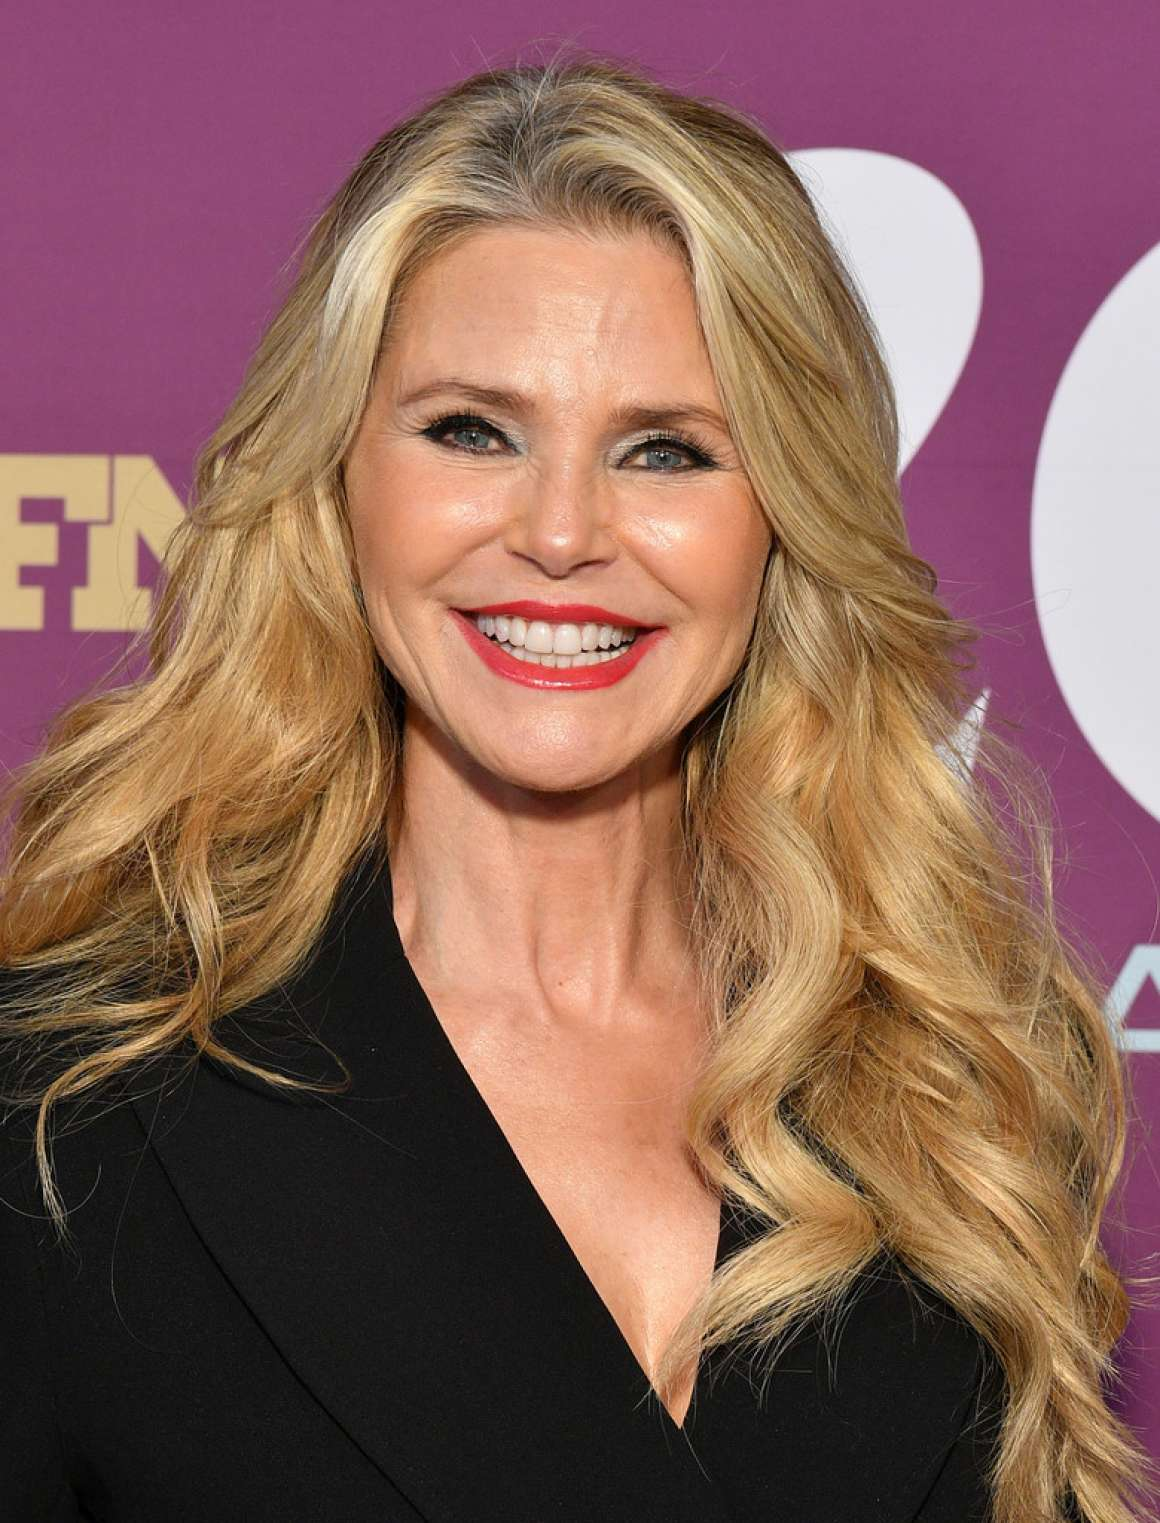 Christie Brinkley 2019 : Christie Brinkley – Footwear News Achievement Awards IAC-03